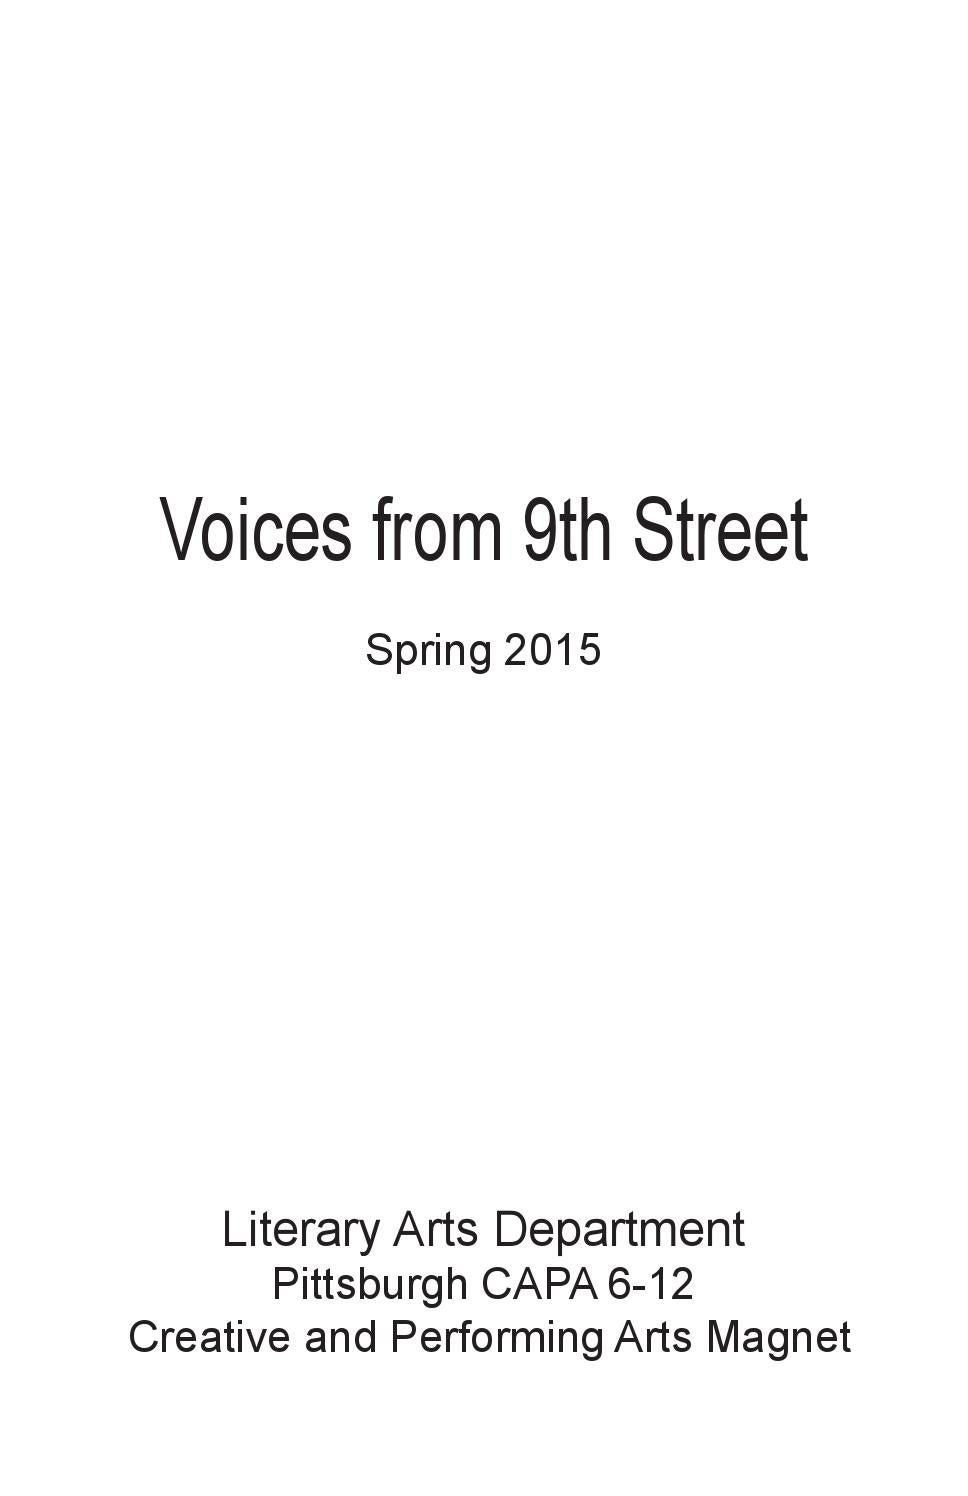 worksheet Human Body Pushing The Limits Strength Worksheet voices from 9th street 9 12 literary arts by mara cregan issuu